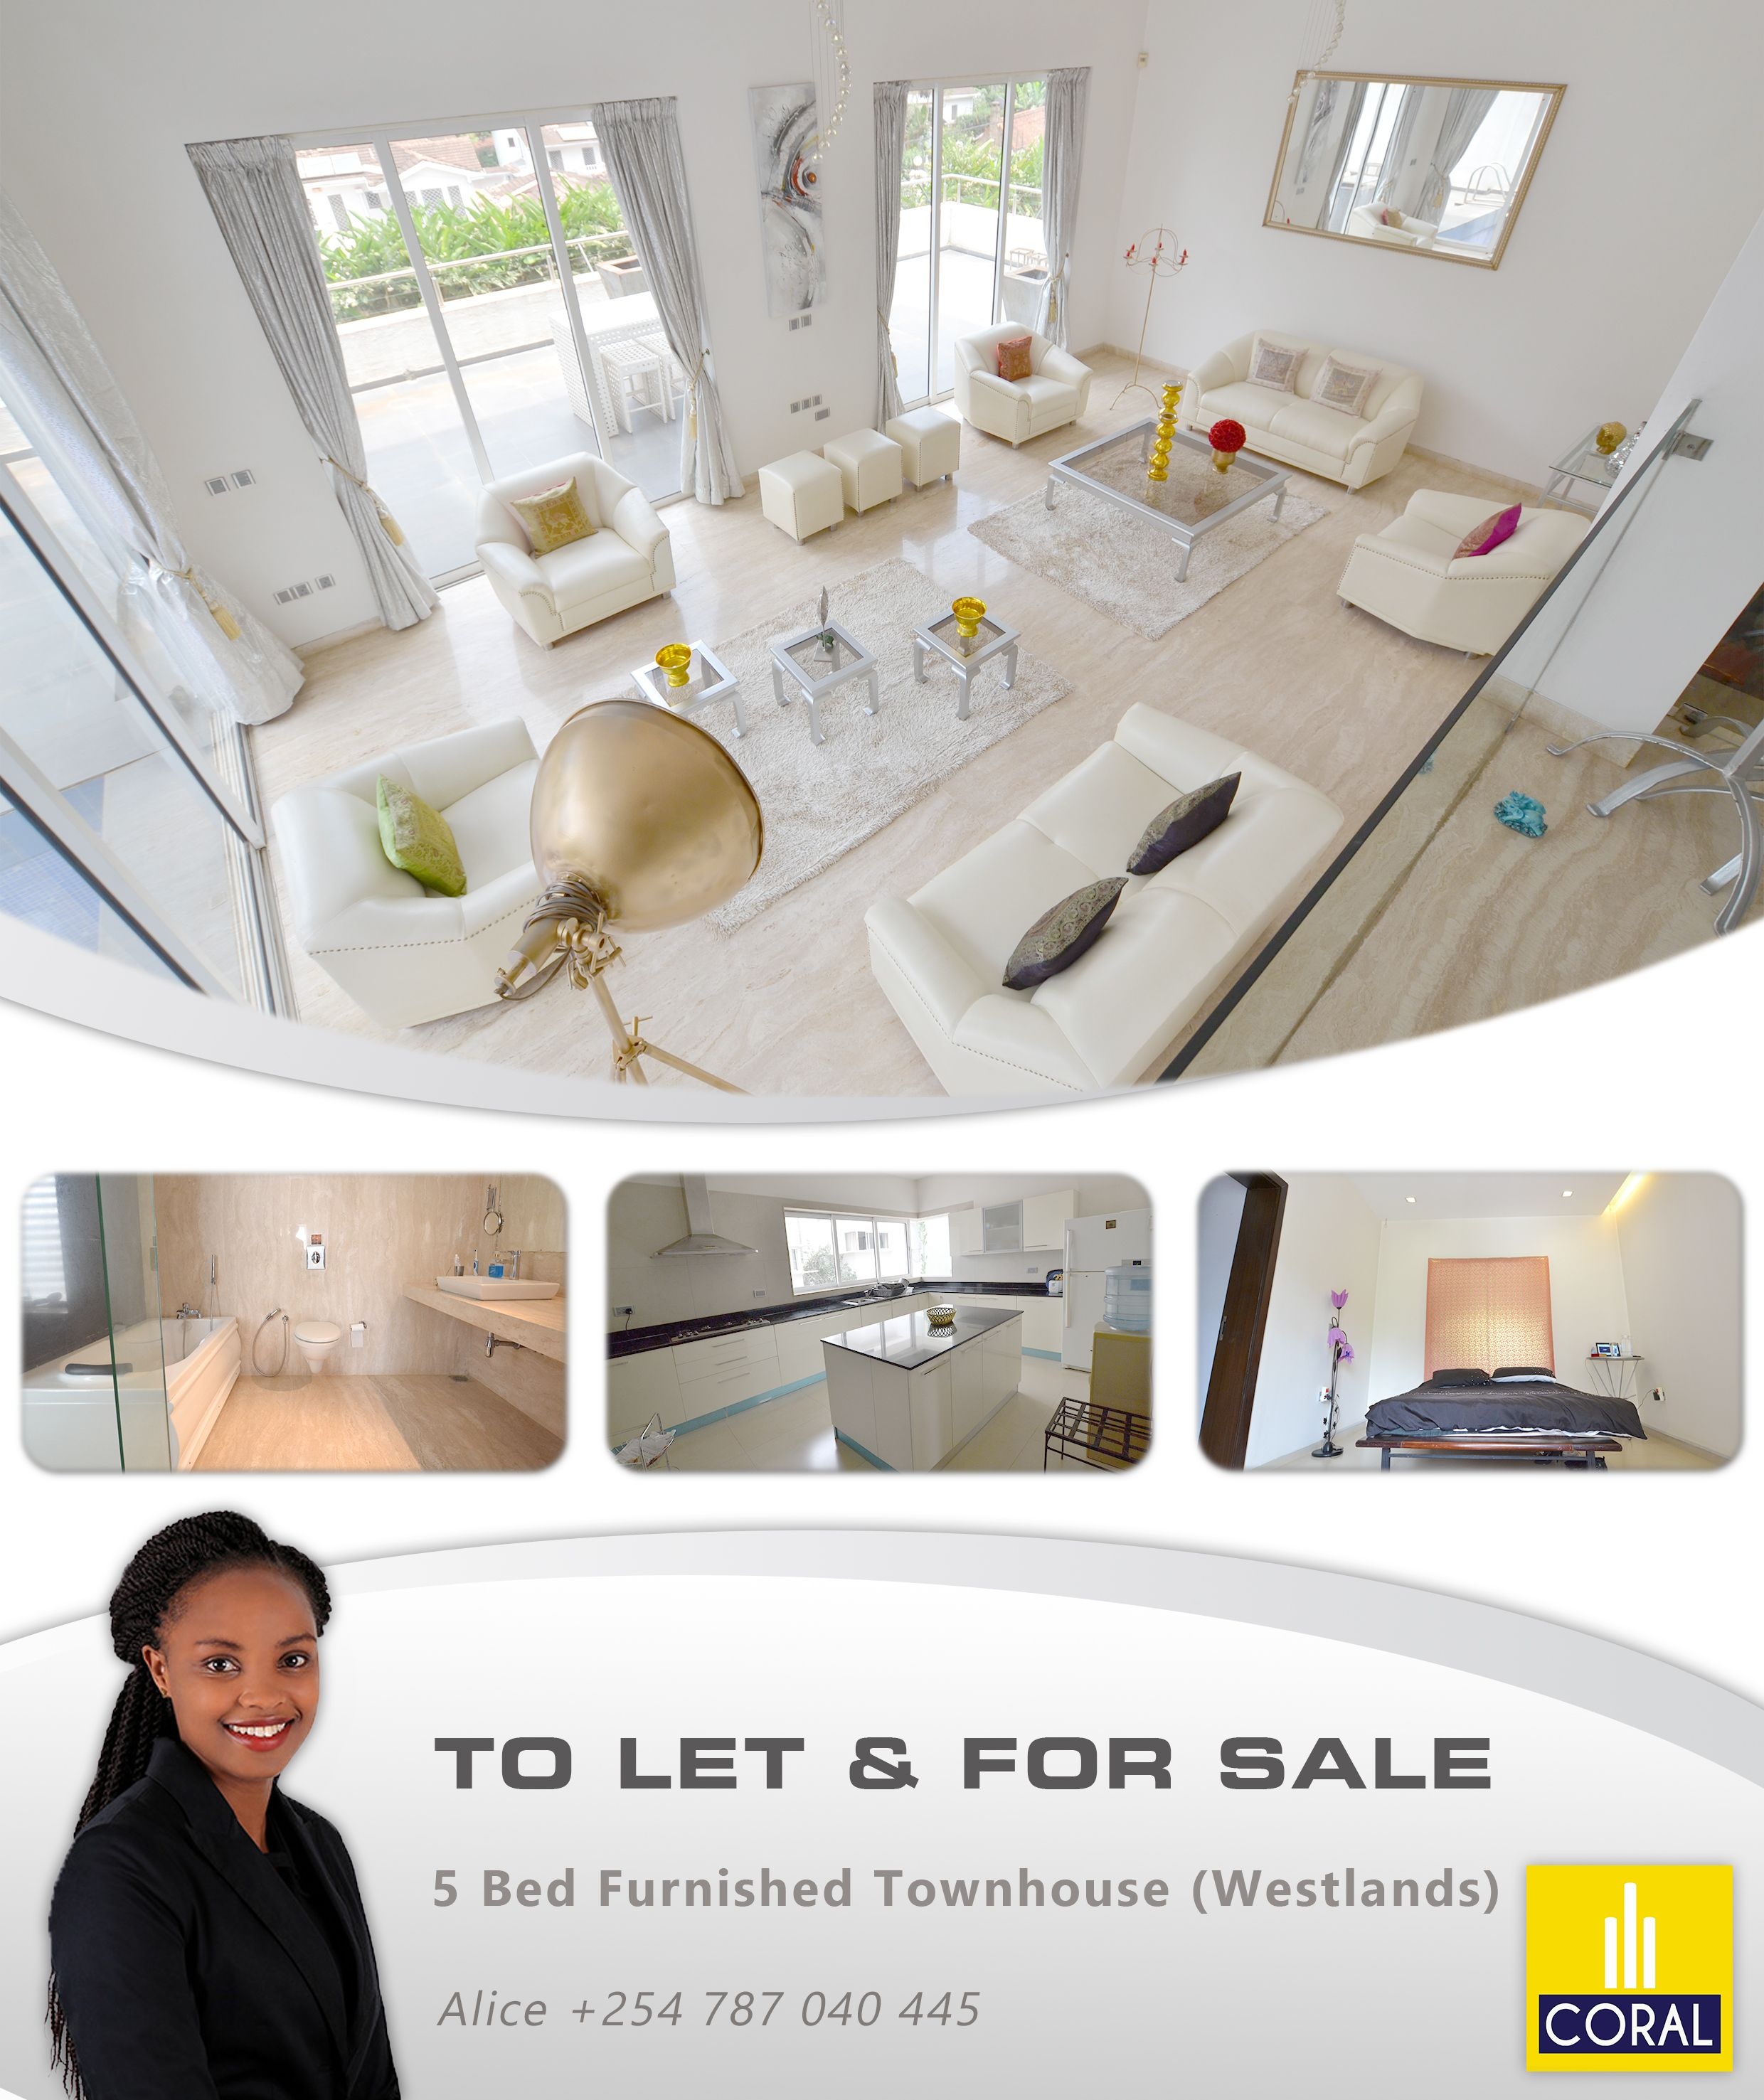 5 Bed Furnished Townhouse To Let & For Sale In Westlands